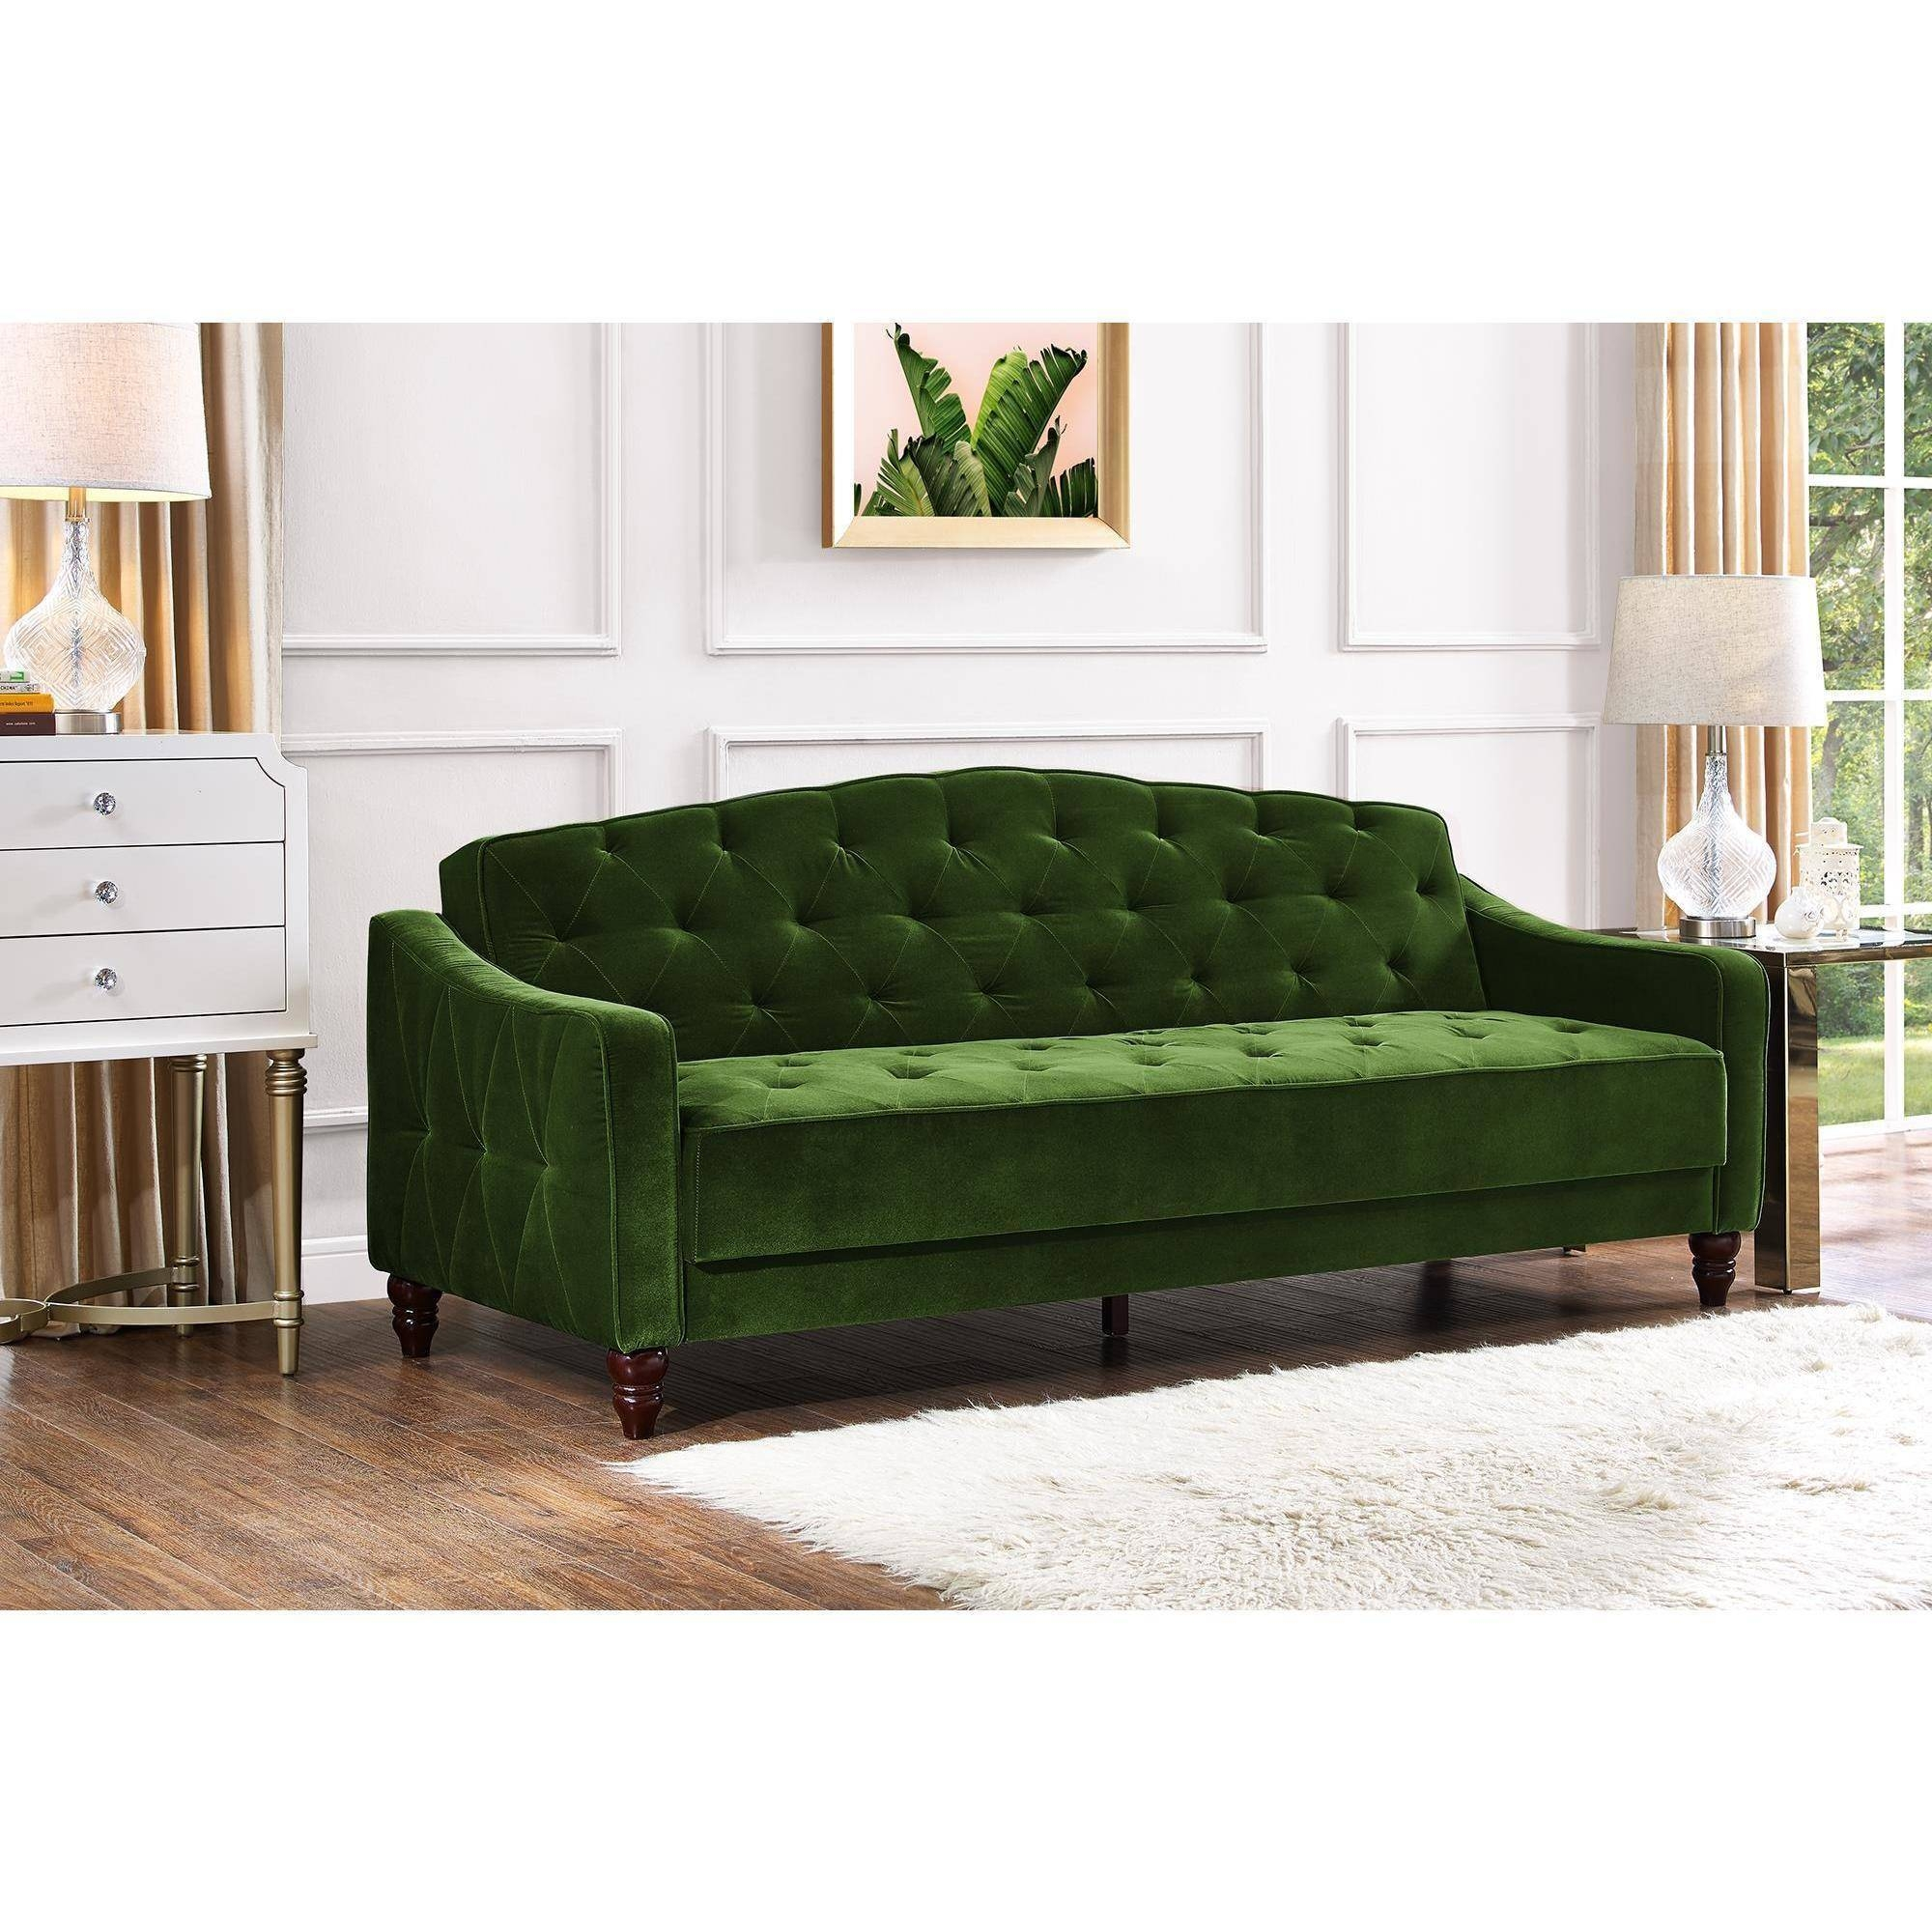 Novogratz Vintage Tufted Sofa Sleeper Ii, Multiple Colors pertaining to Ava Tufted Sleeper Sofas (Image 10 of 15)